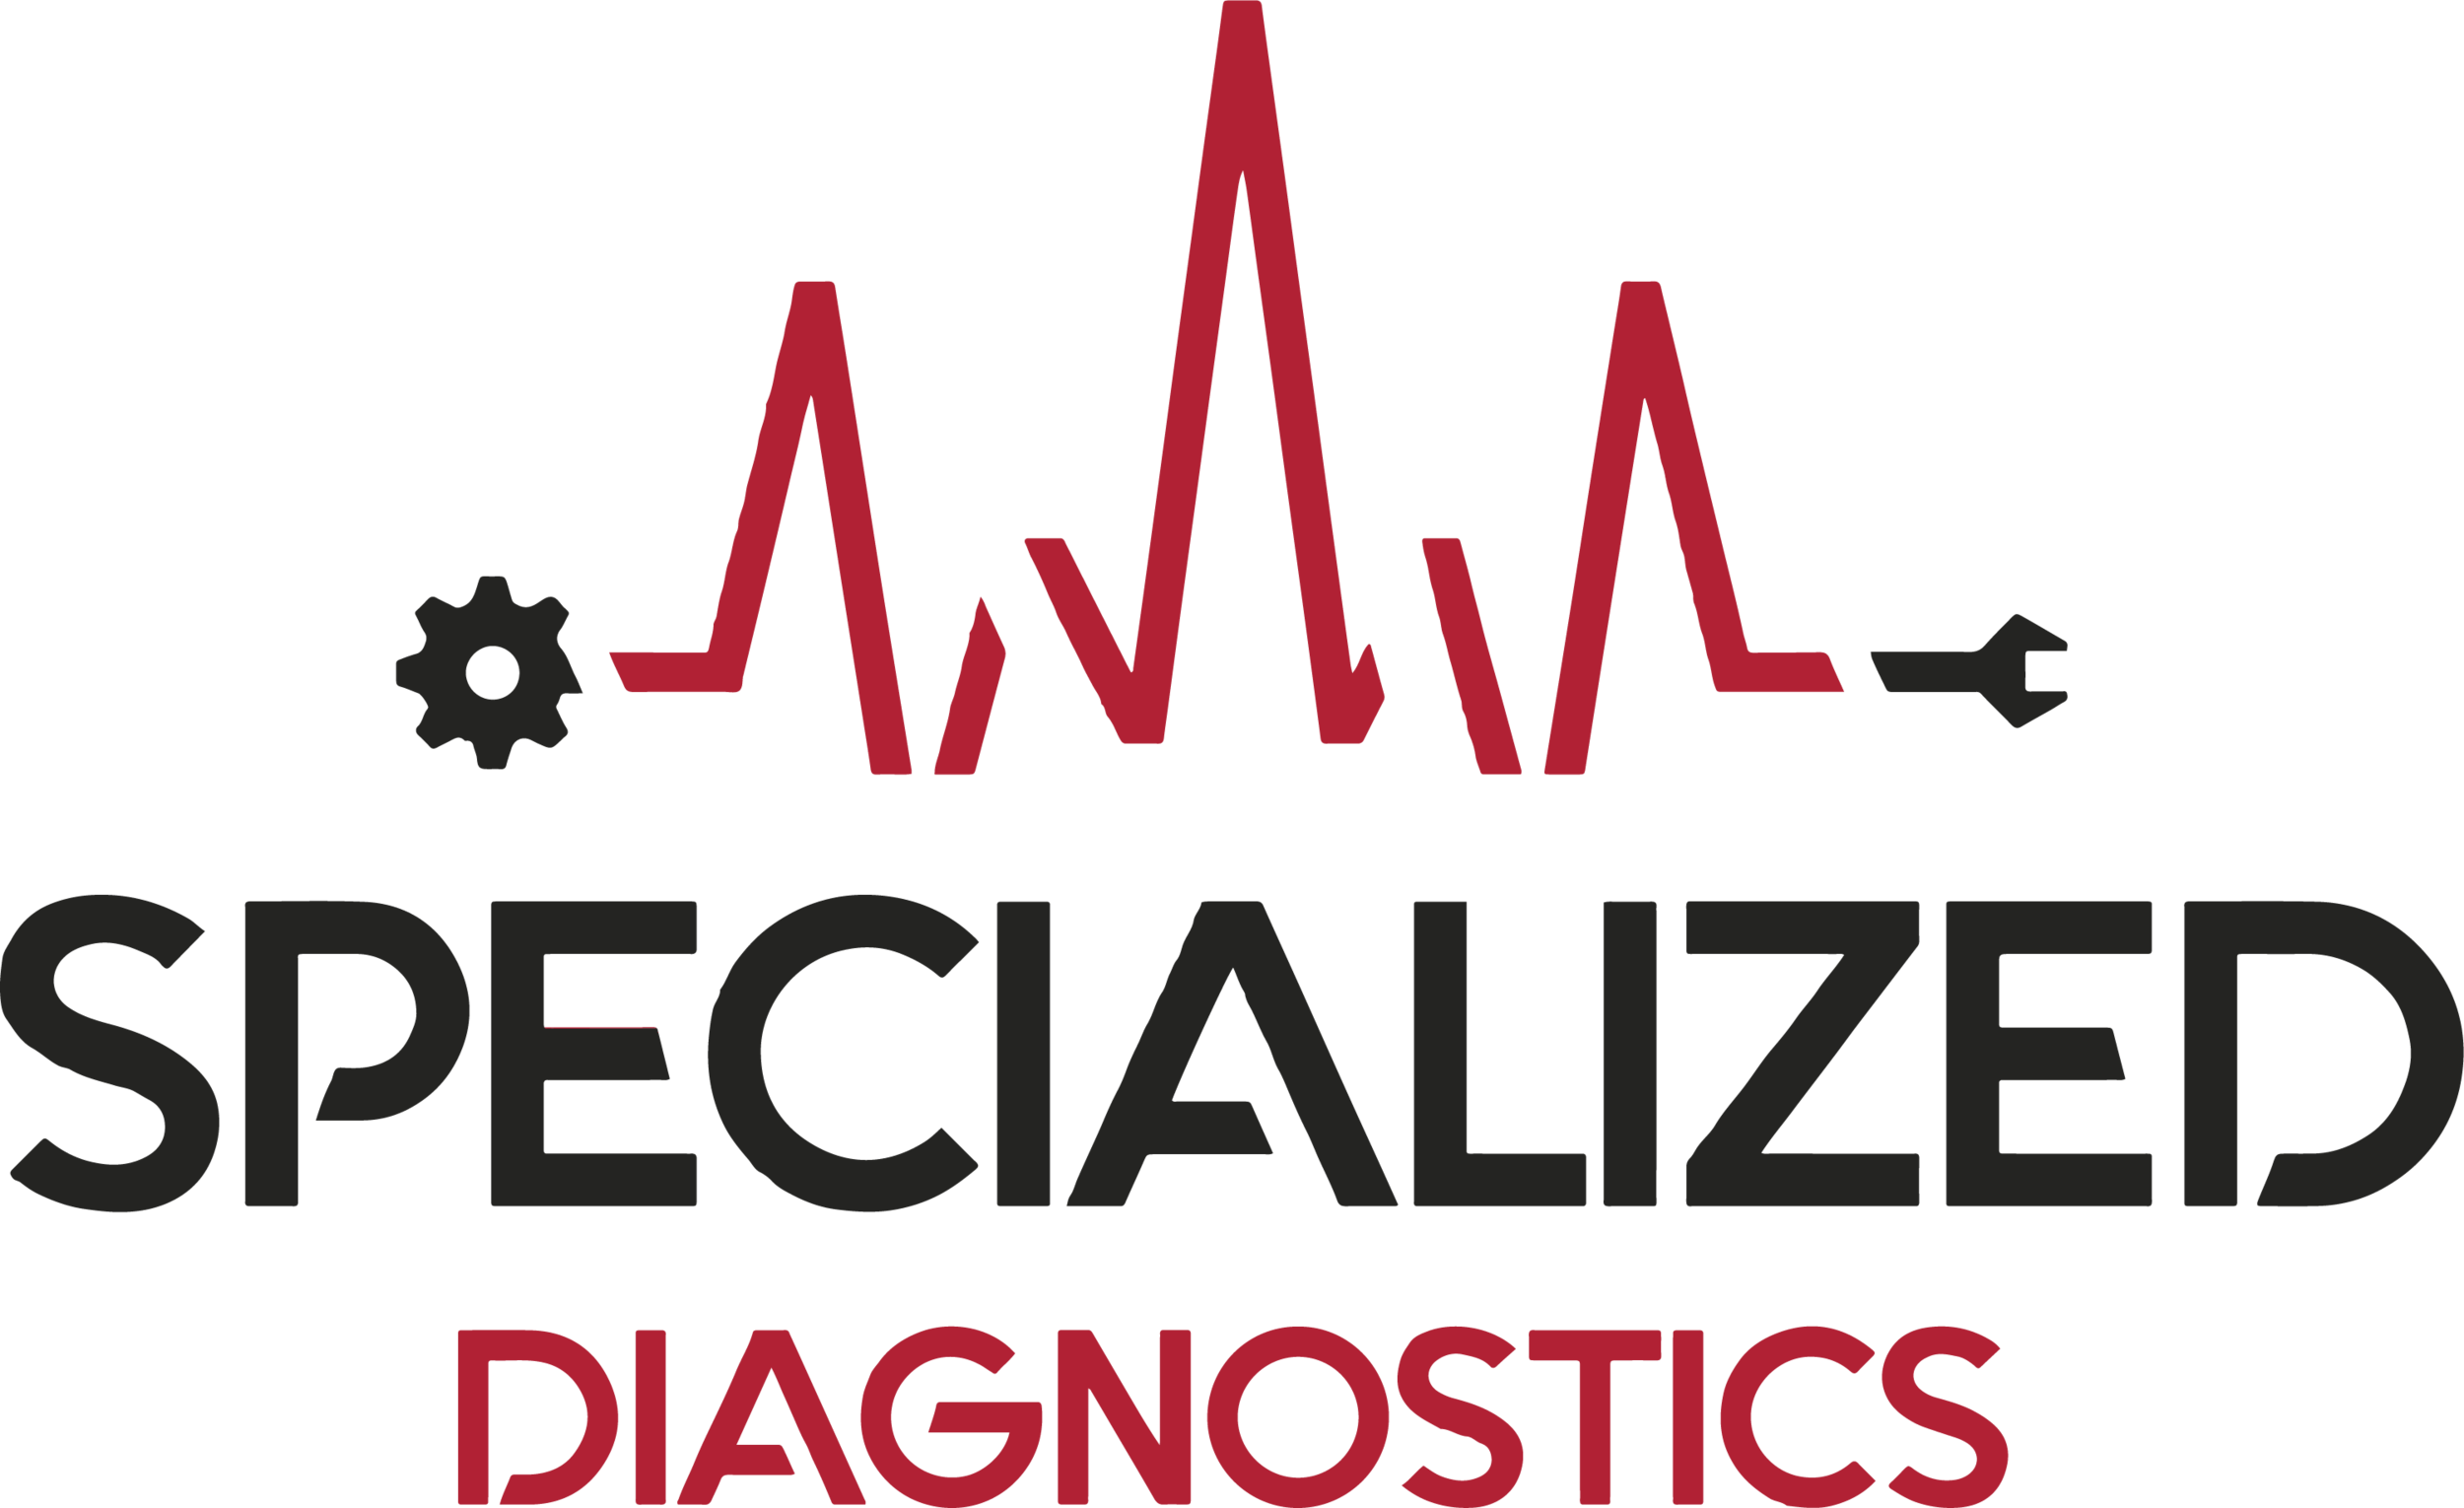 specialized_diagnostics-02.png